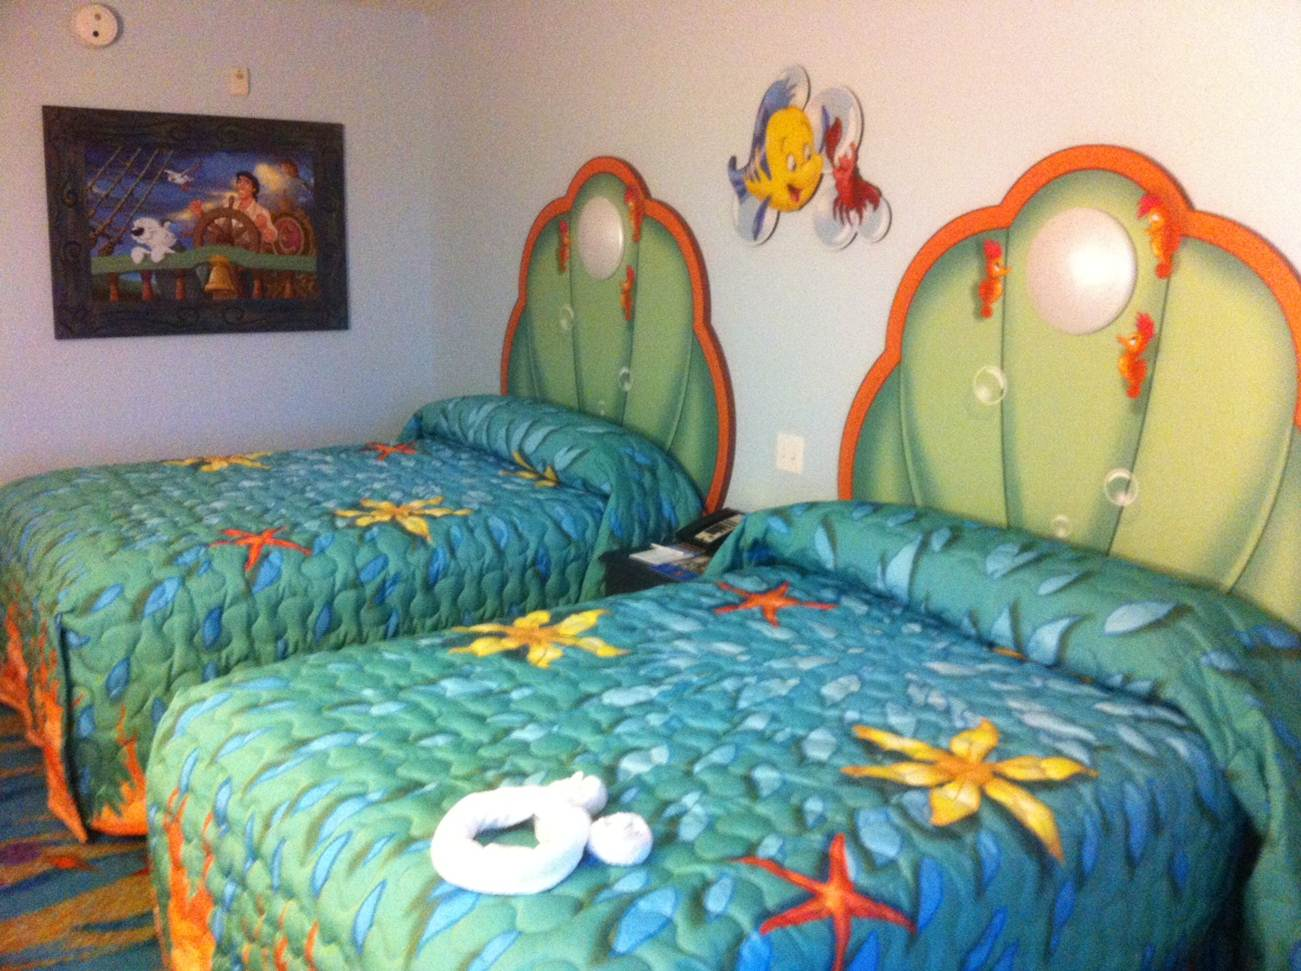 Rooms Review: Photo Tour Of Standard Little Mermaid Rooms At Disney's